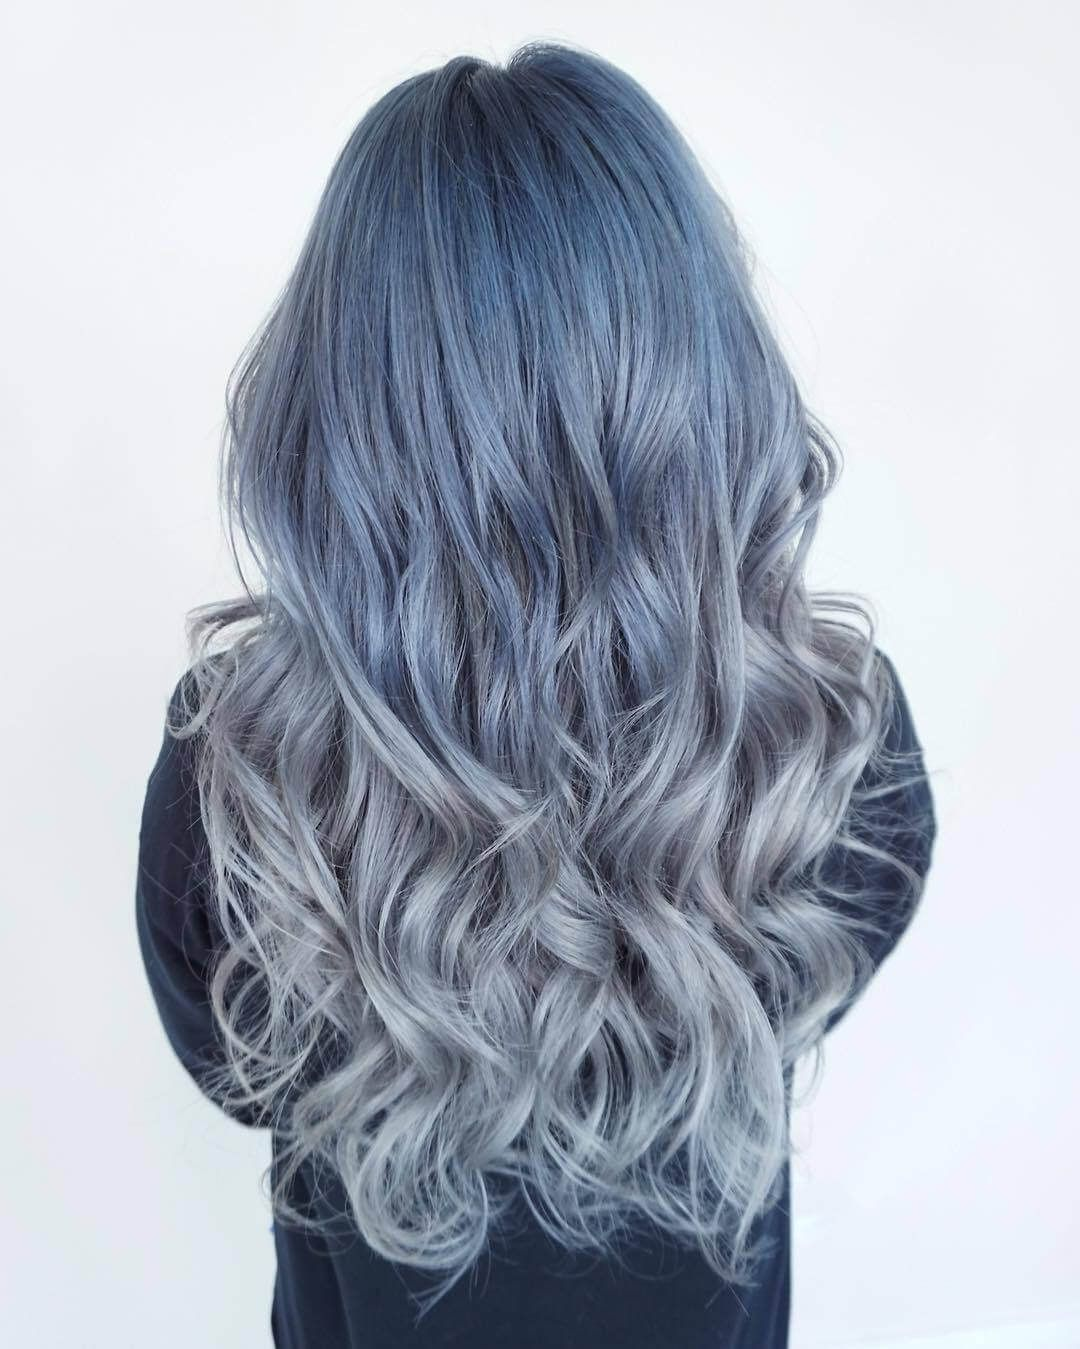 fun blue hair ideas to become more adventurous with your hair